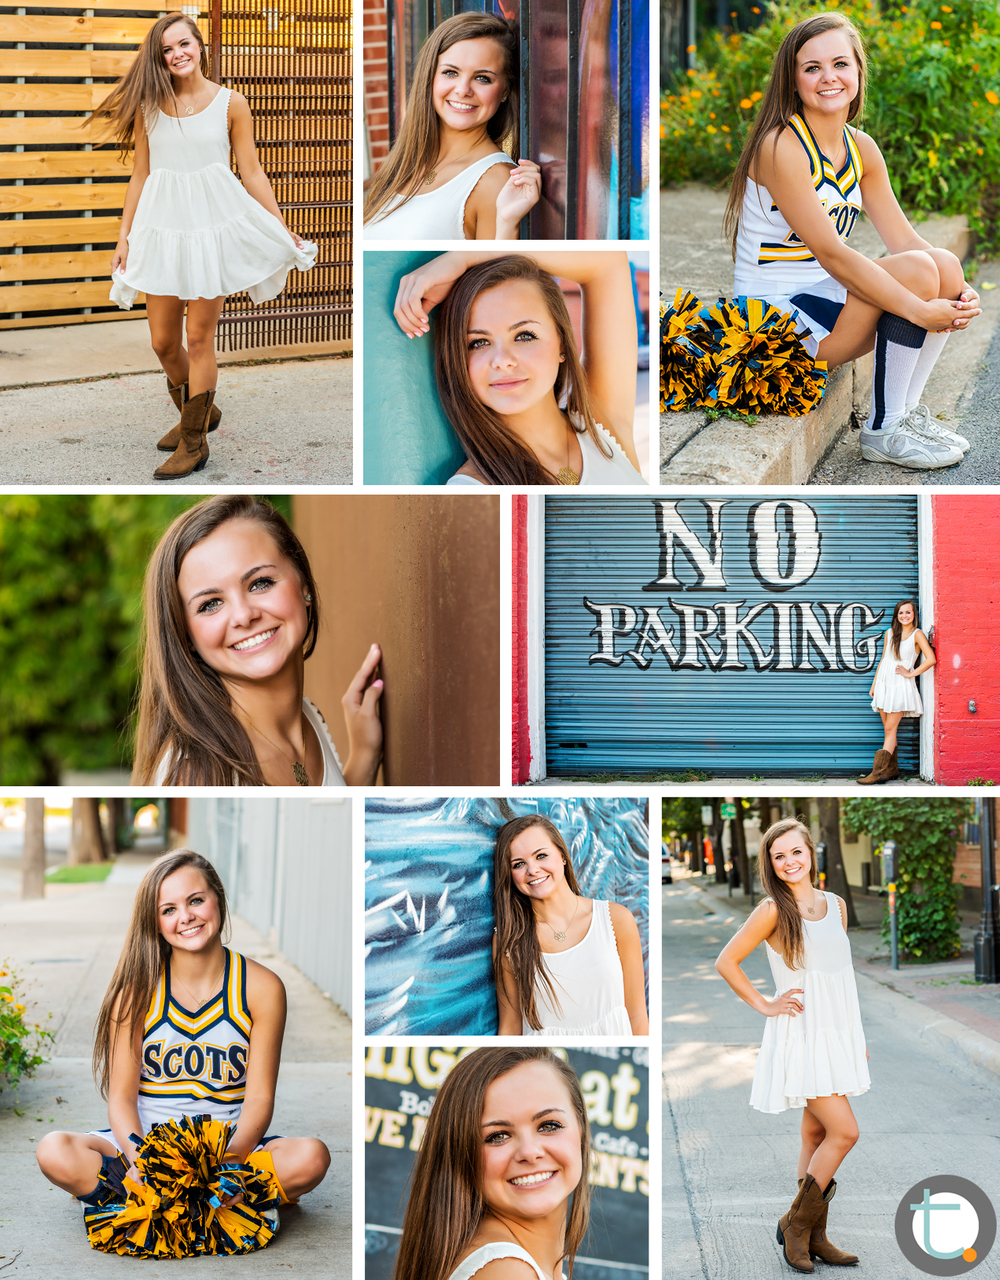 Kate, HP Class of 2014